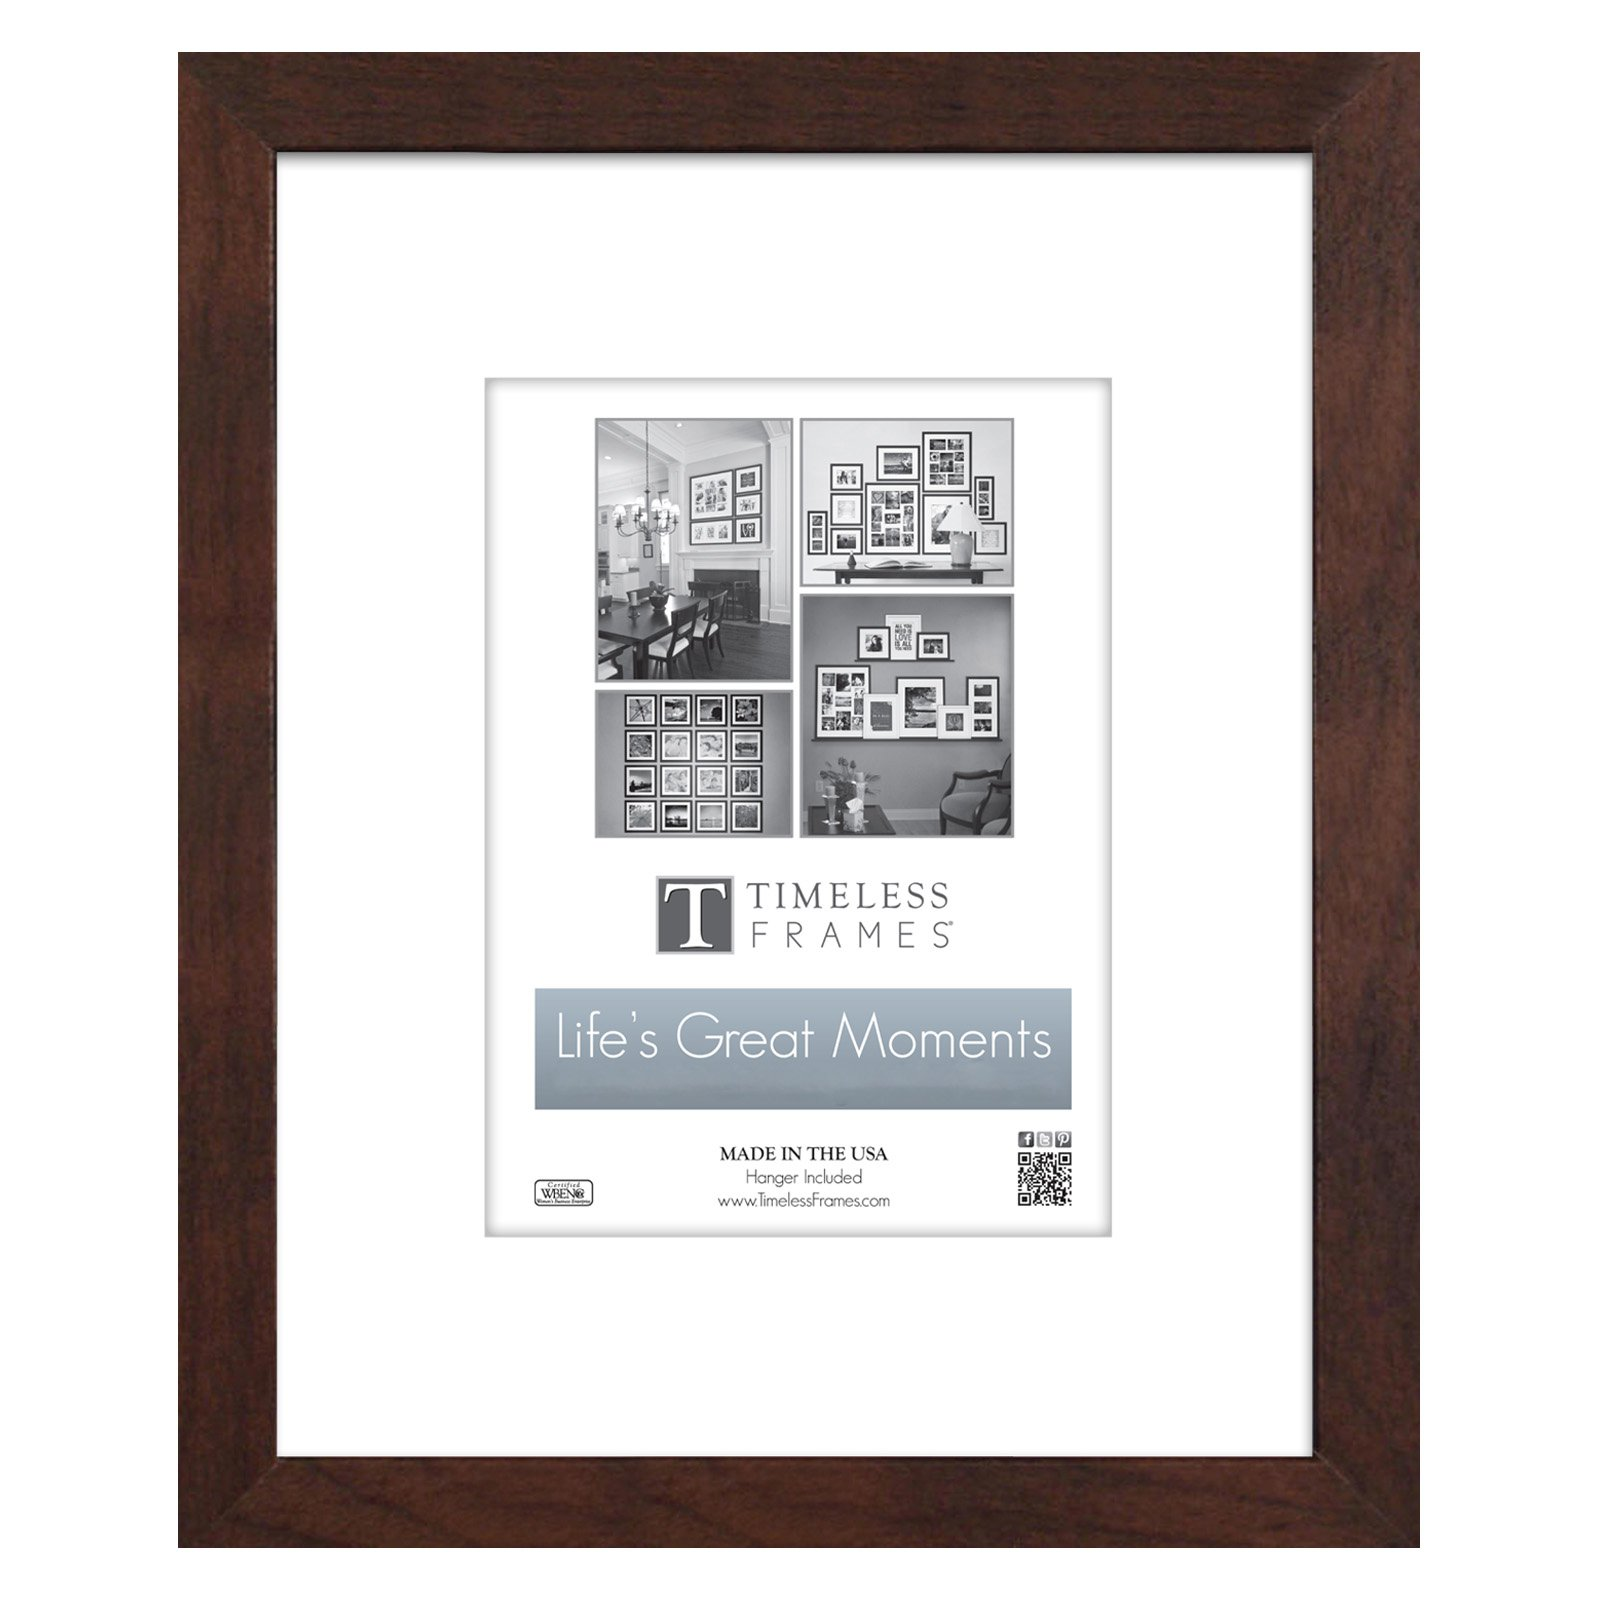 Timeless Frames Lifes Great Moments Picture Frame - Walmart.com